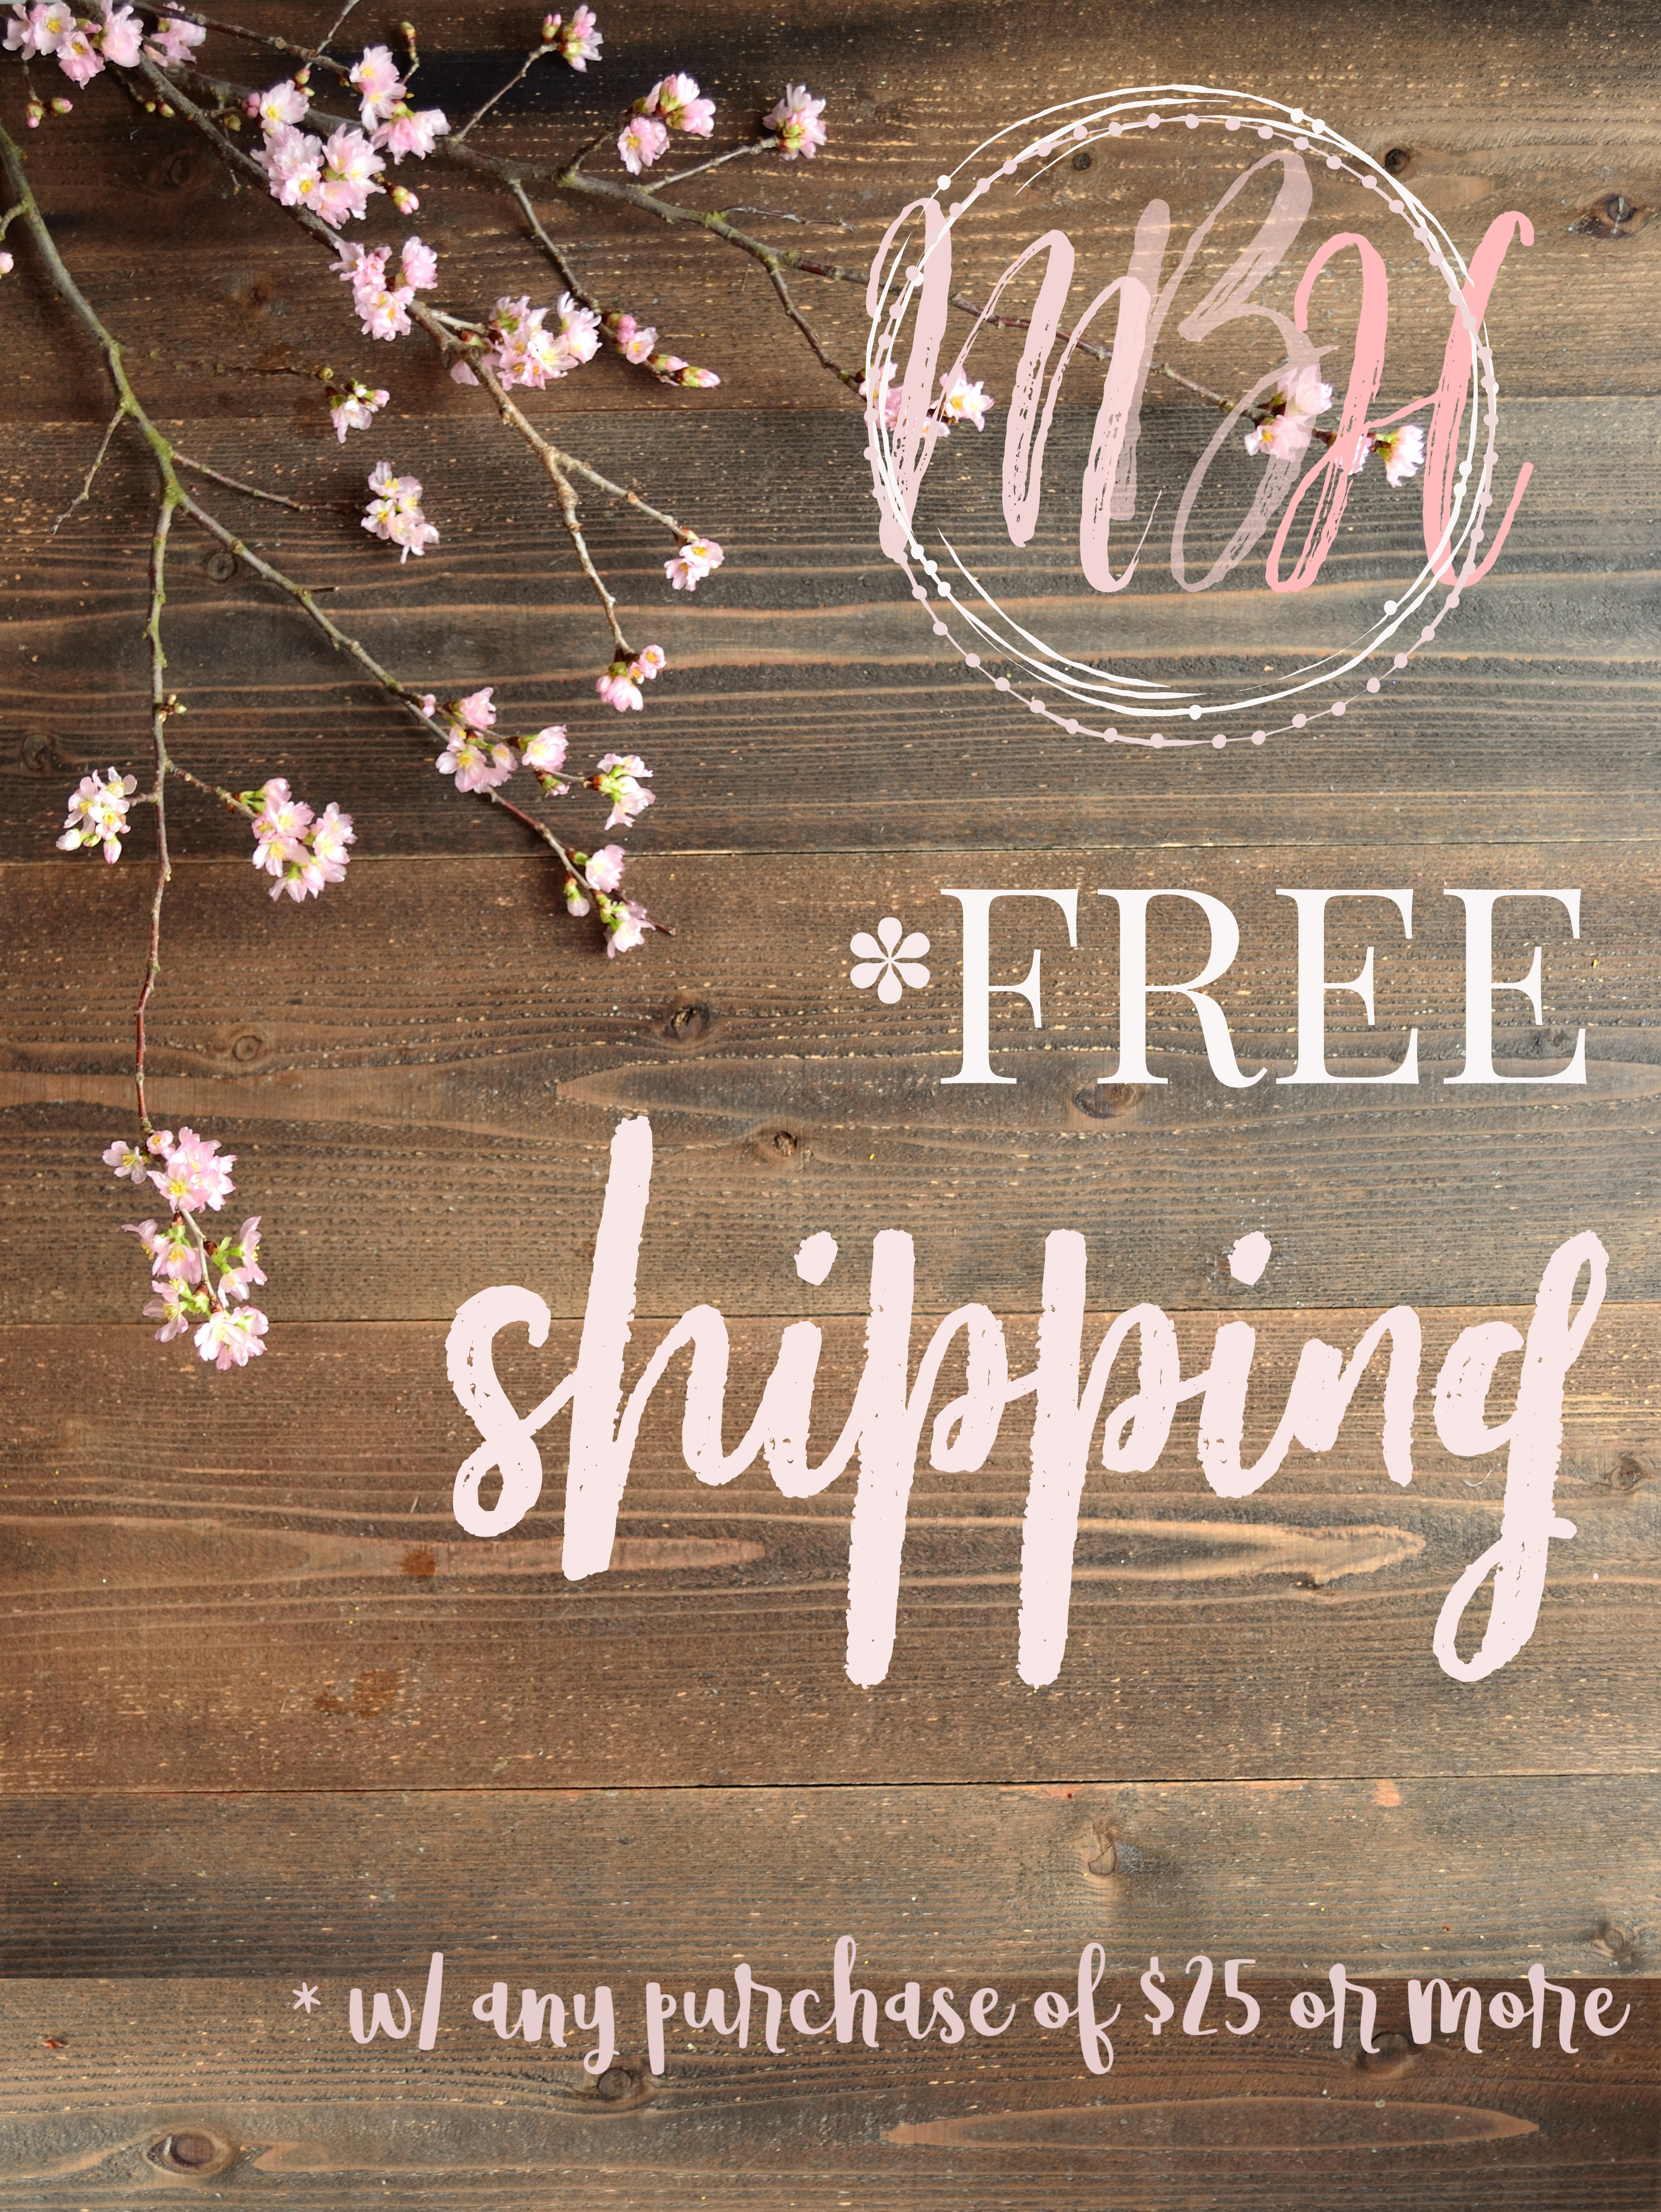 free shipping at magical beans home